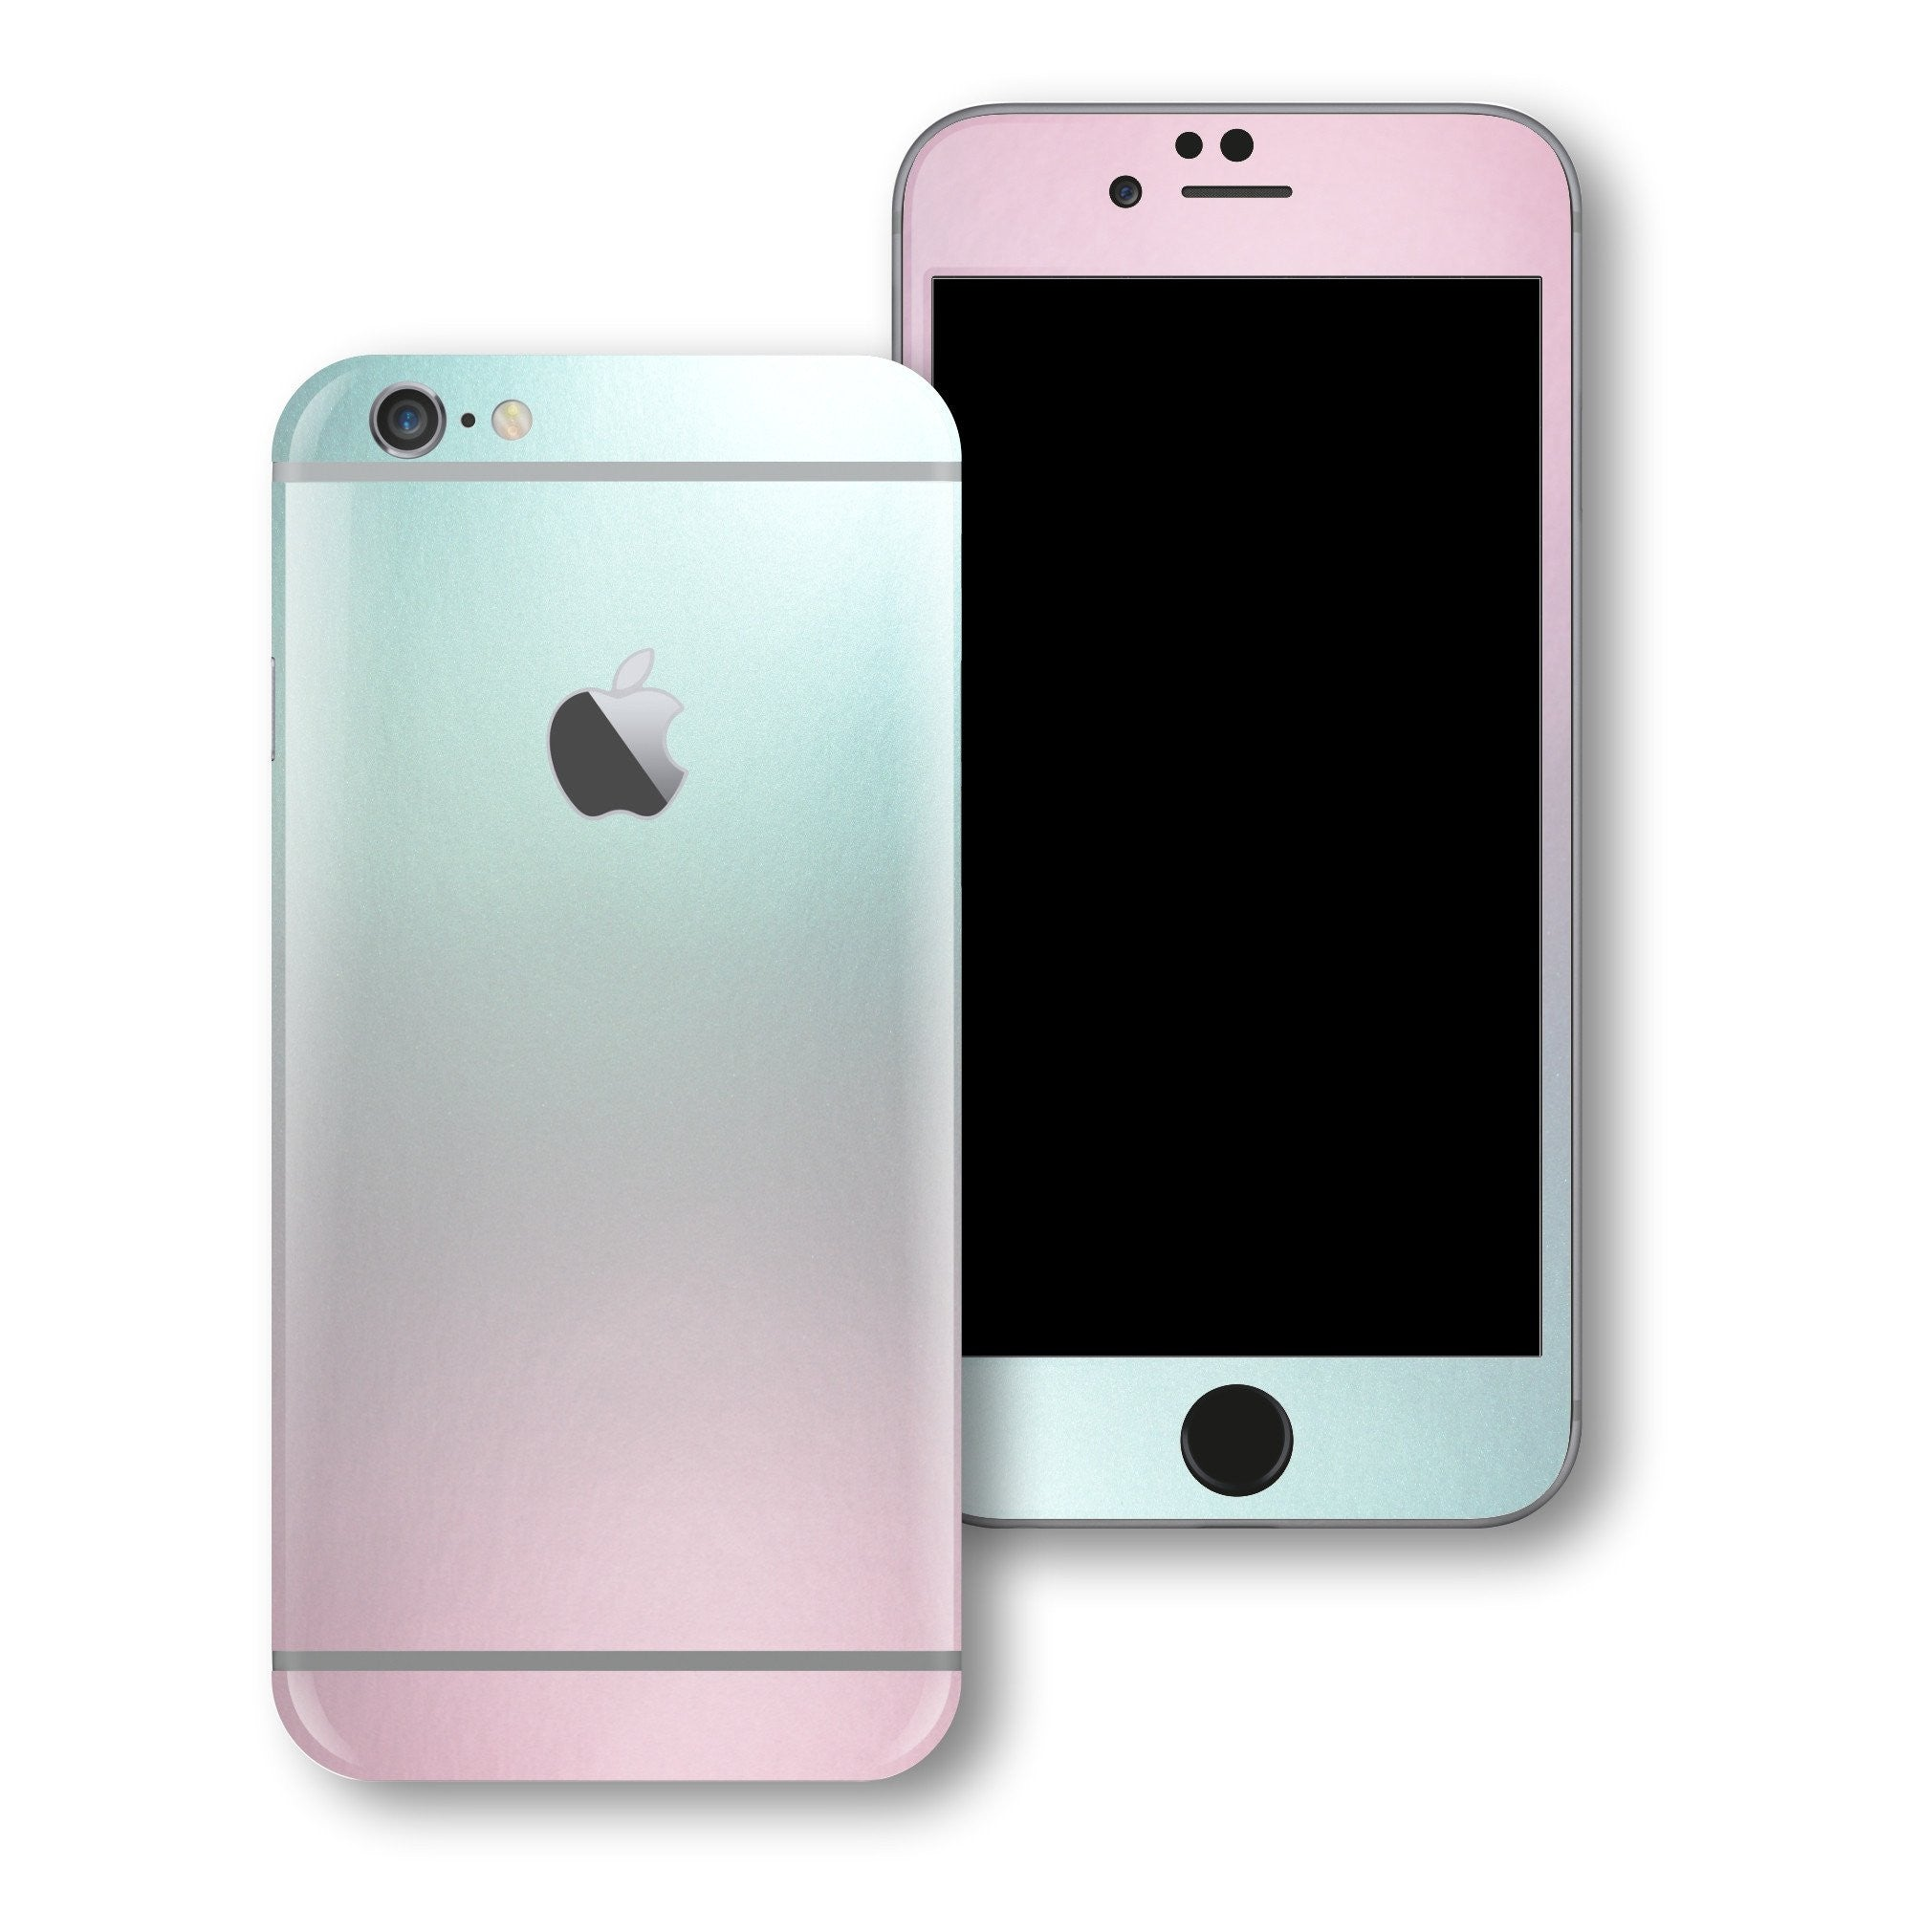 Iphone 6 skins / wraps / decals – easyskinz